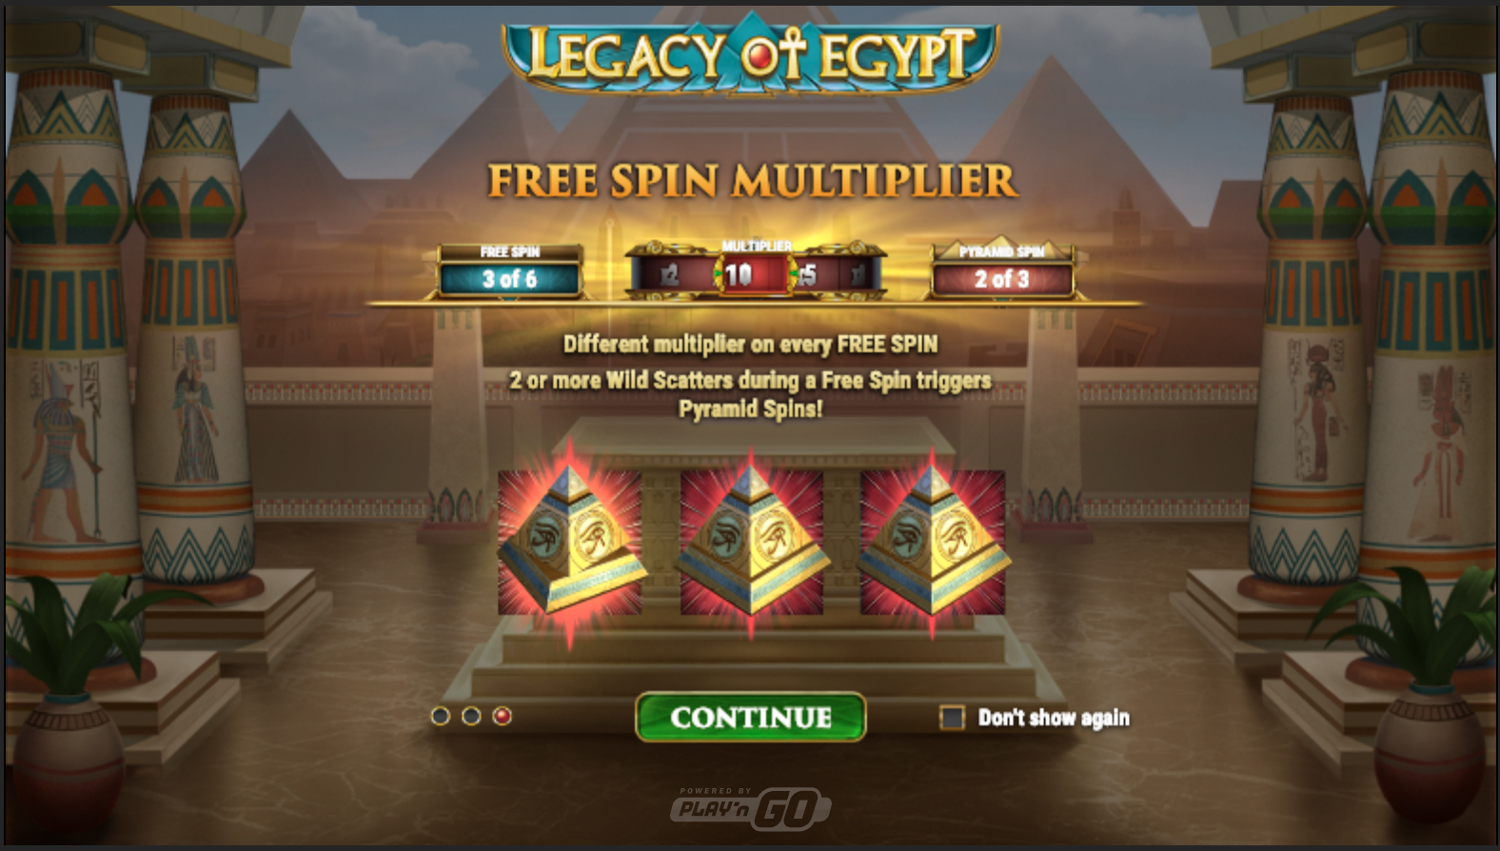 Free spins multiplier